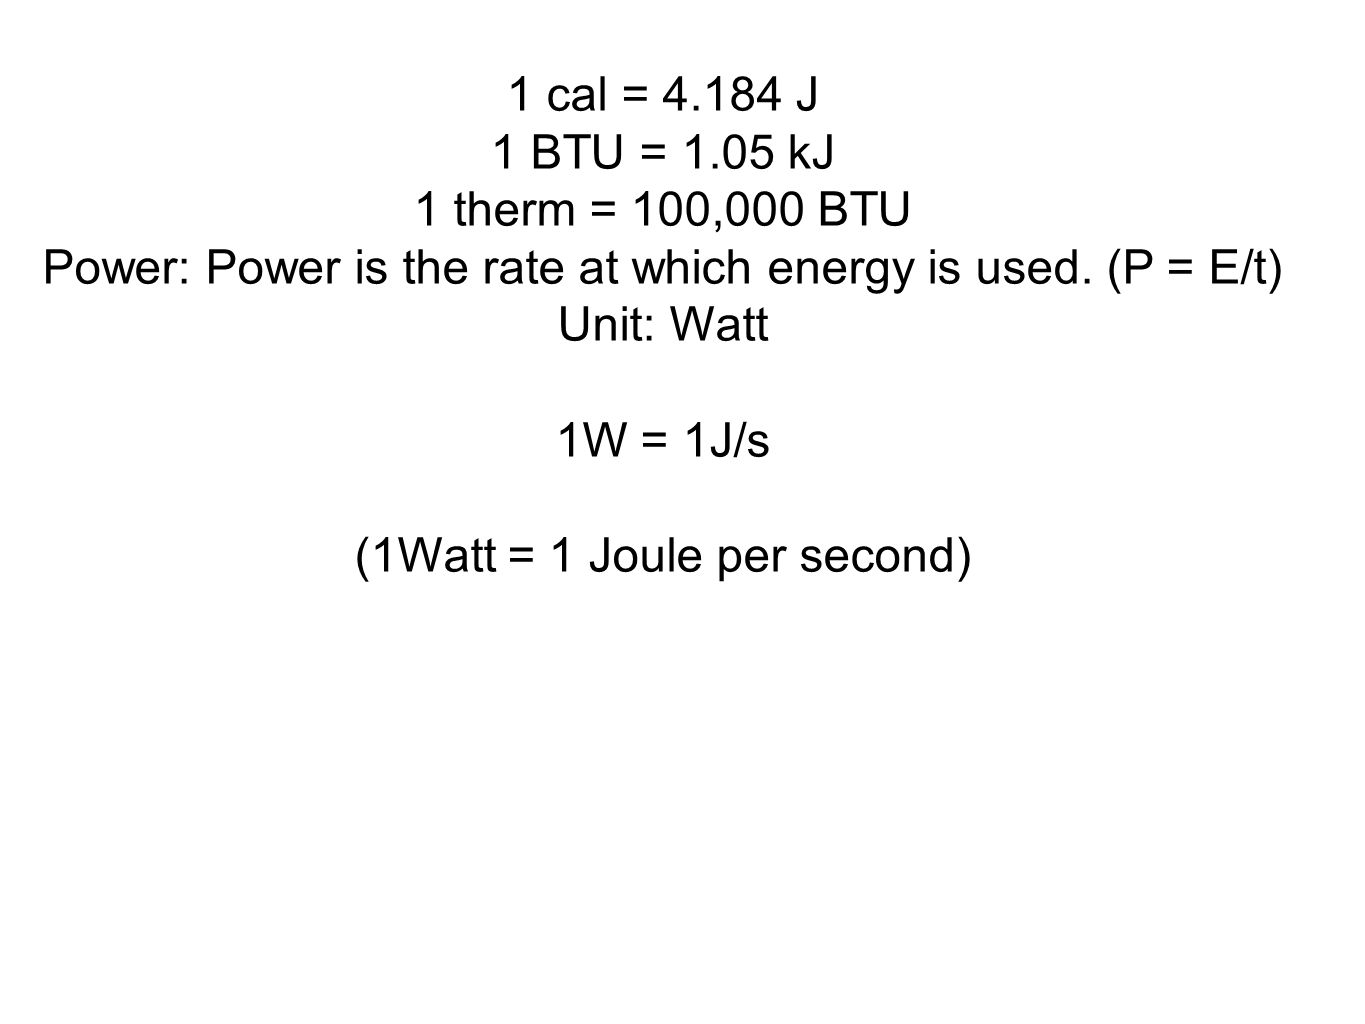 Power: Power is the rate at which energy is used. (P = E/t) Unit: Watt